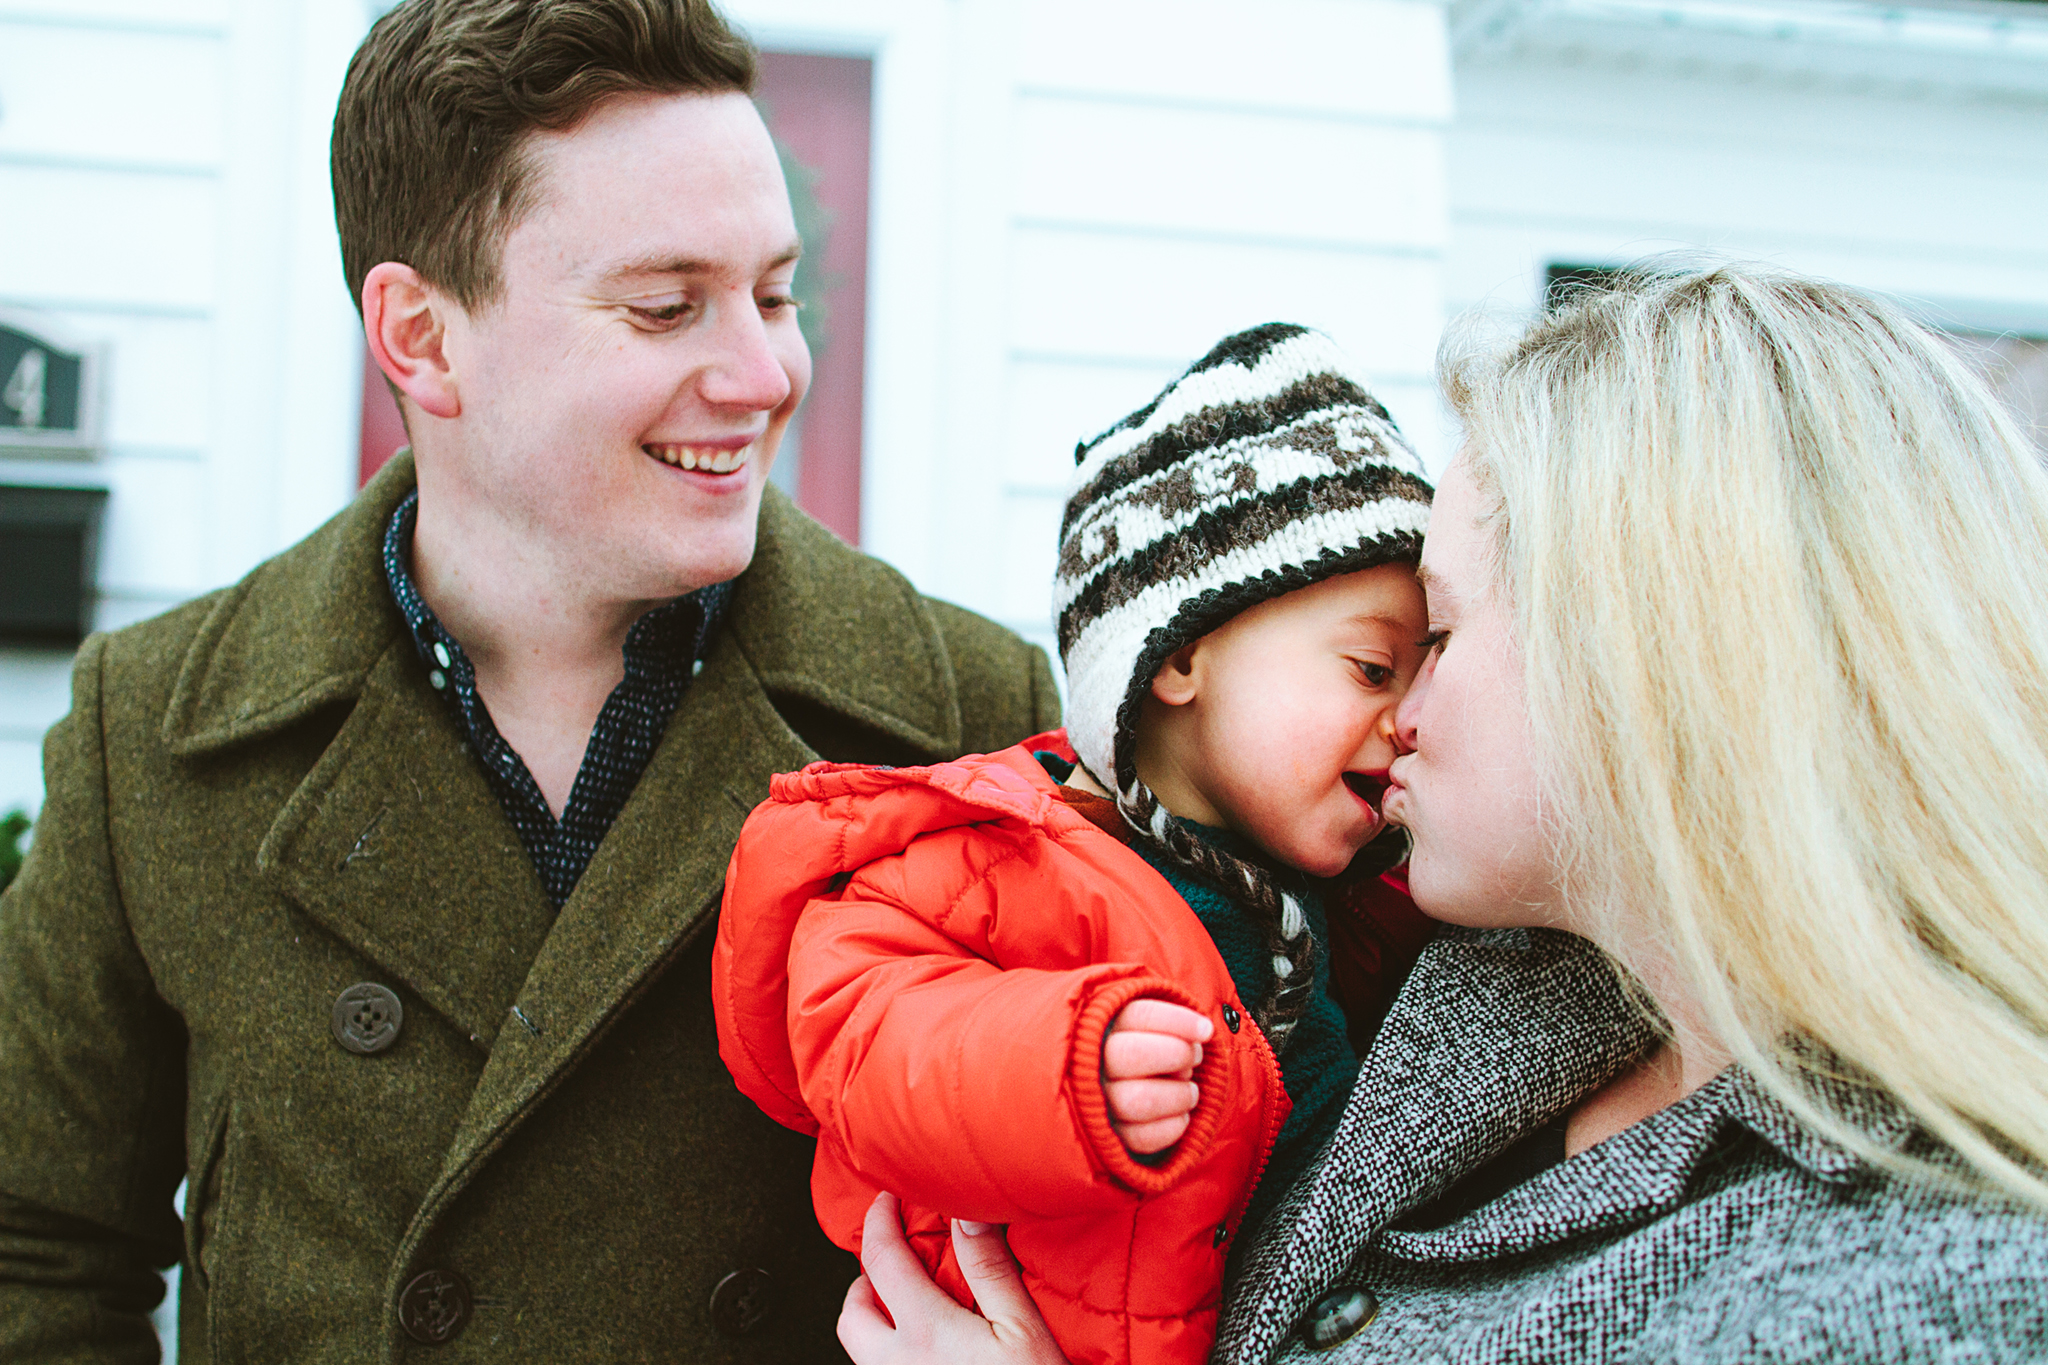 Woodinville Family Portrait Photography